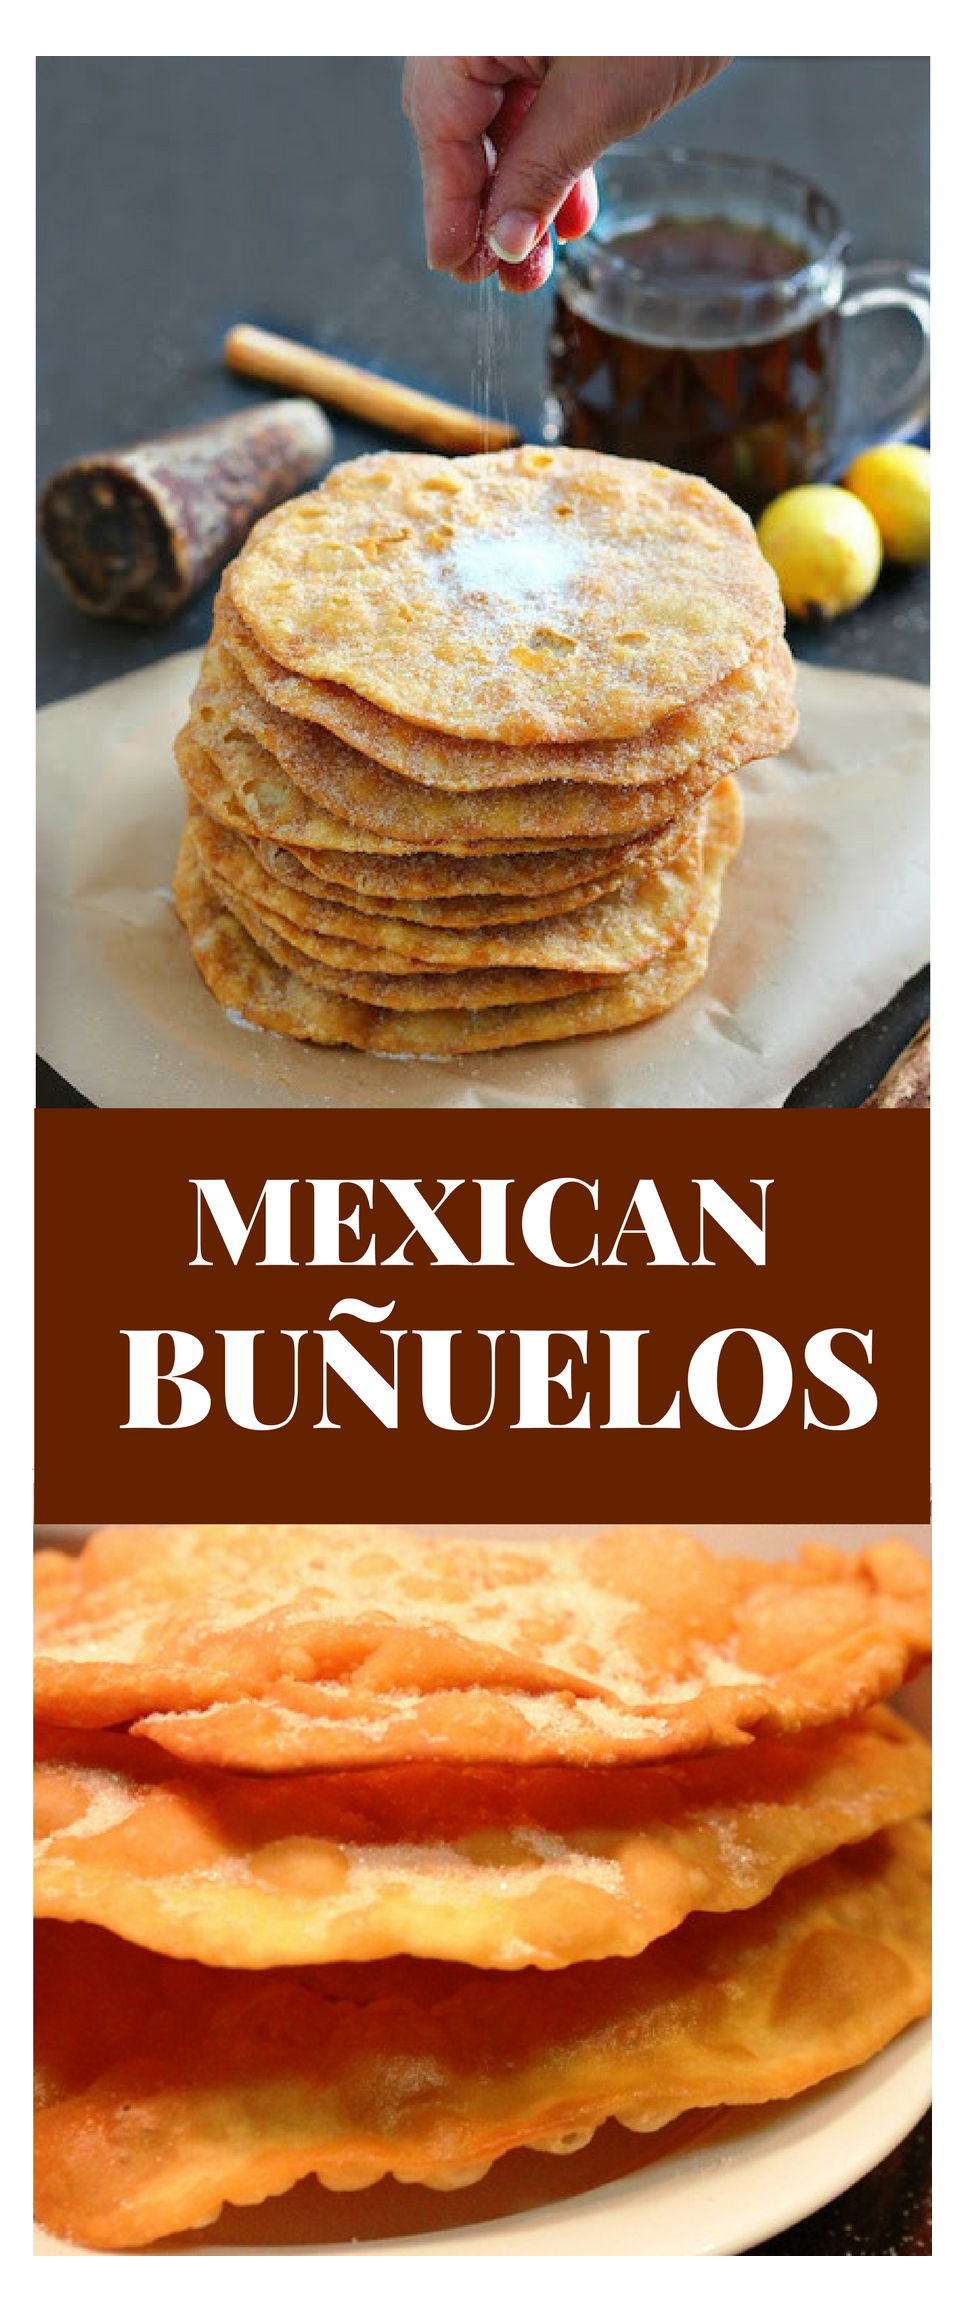 Mexican Christmas Food.How To Make Mexican Bunuelos